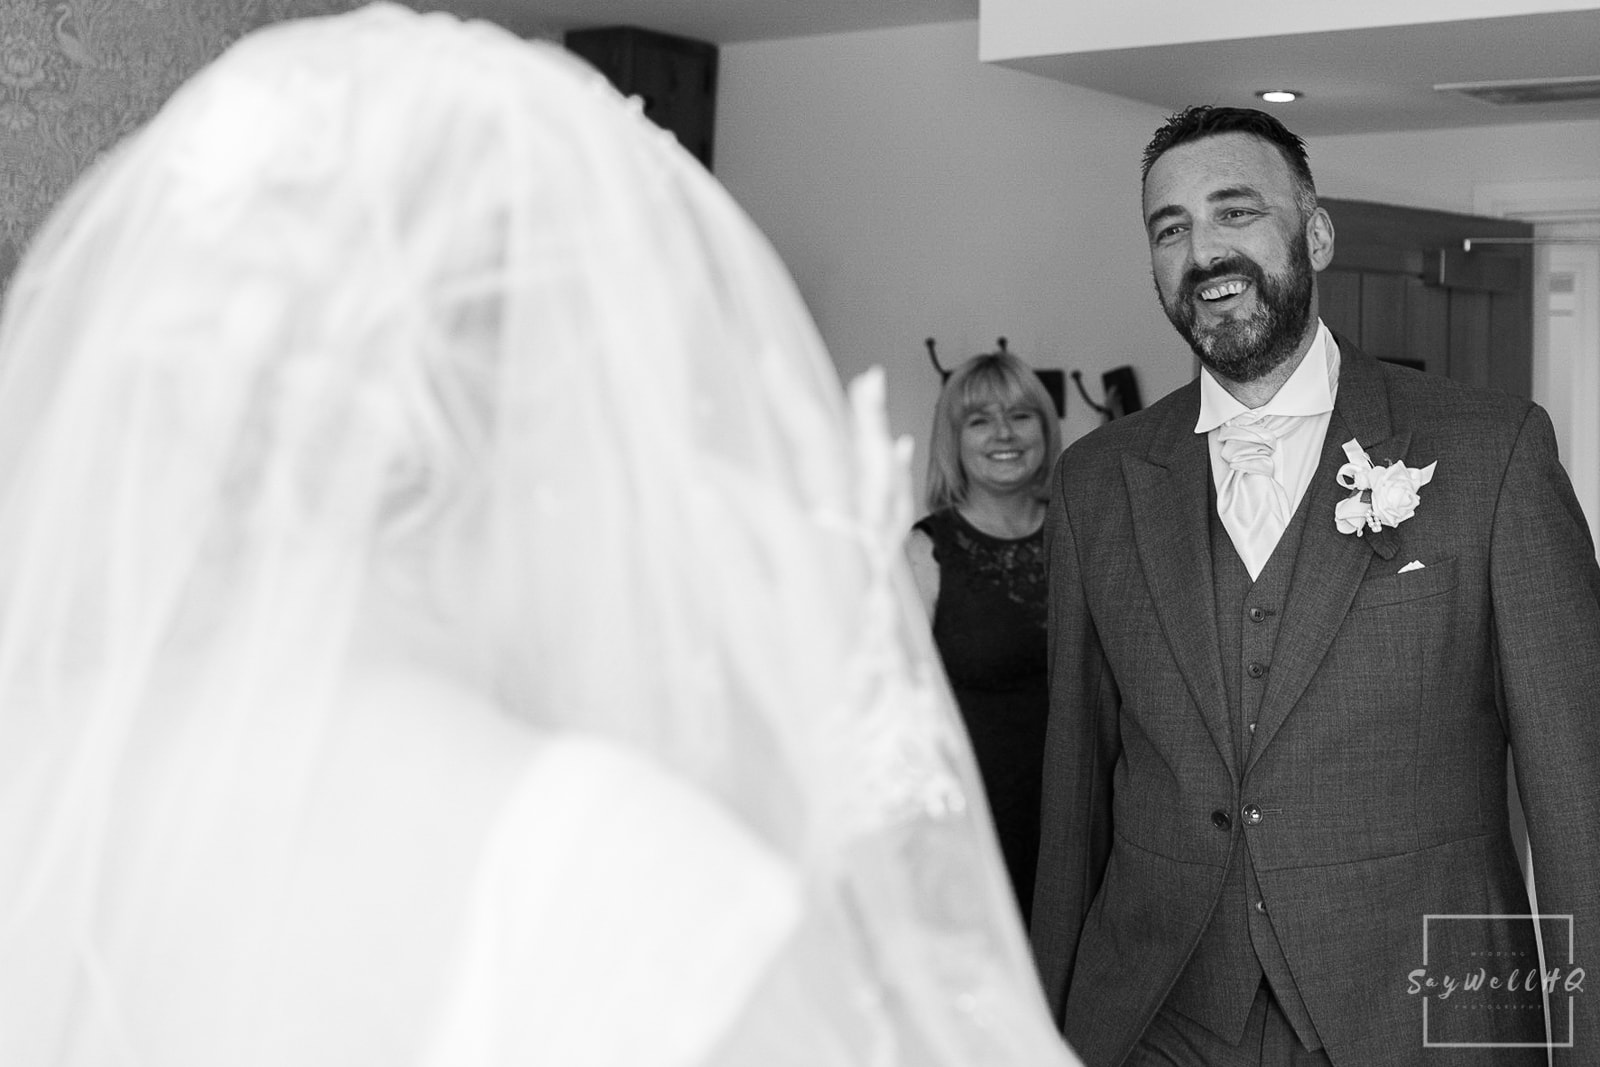 White Hart Inn Wedding Photography - Bride and her father see each other for the first time on the wedding day